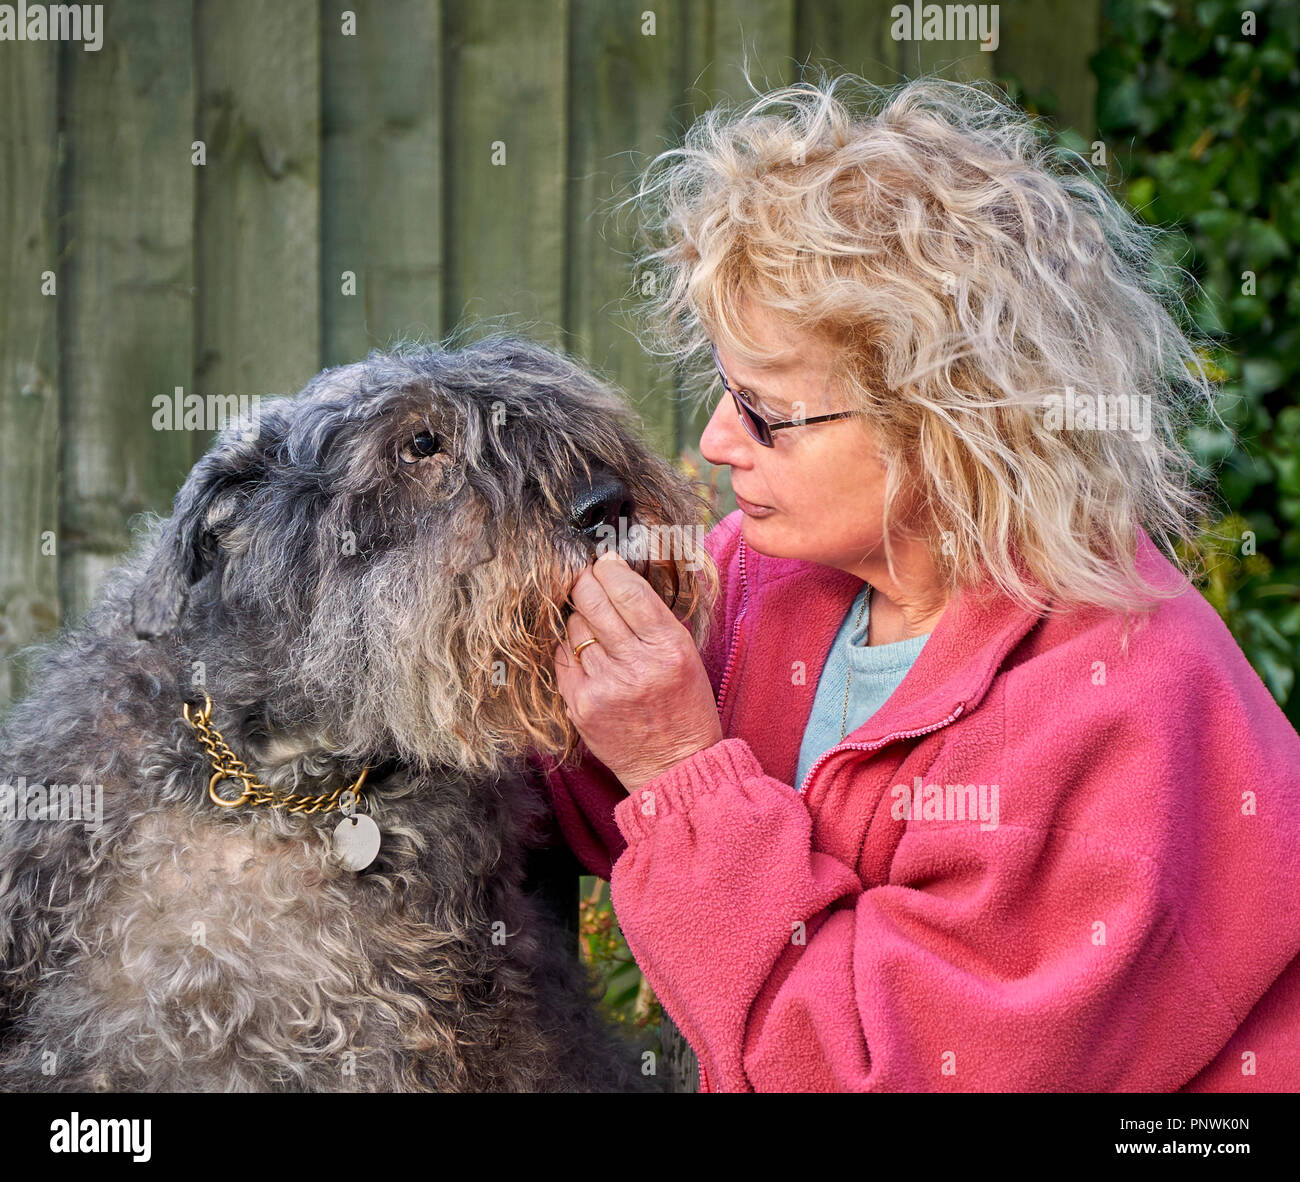 A pet dog (Bouvier des Flandres) and her loving owner share an intimate moment over a biscuit - Stock Image